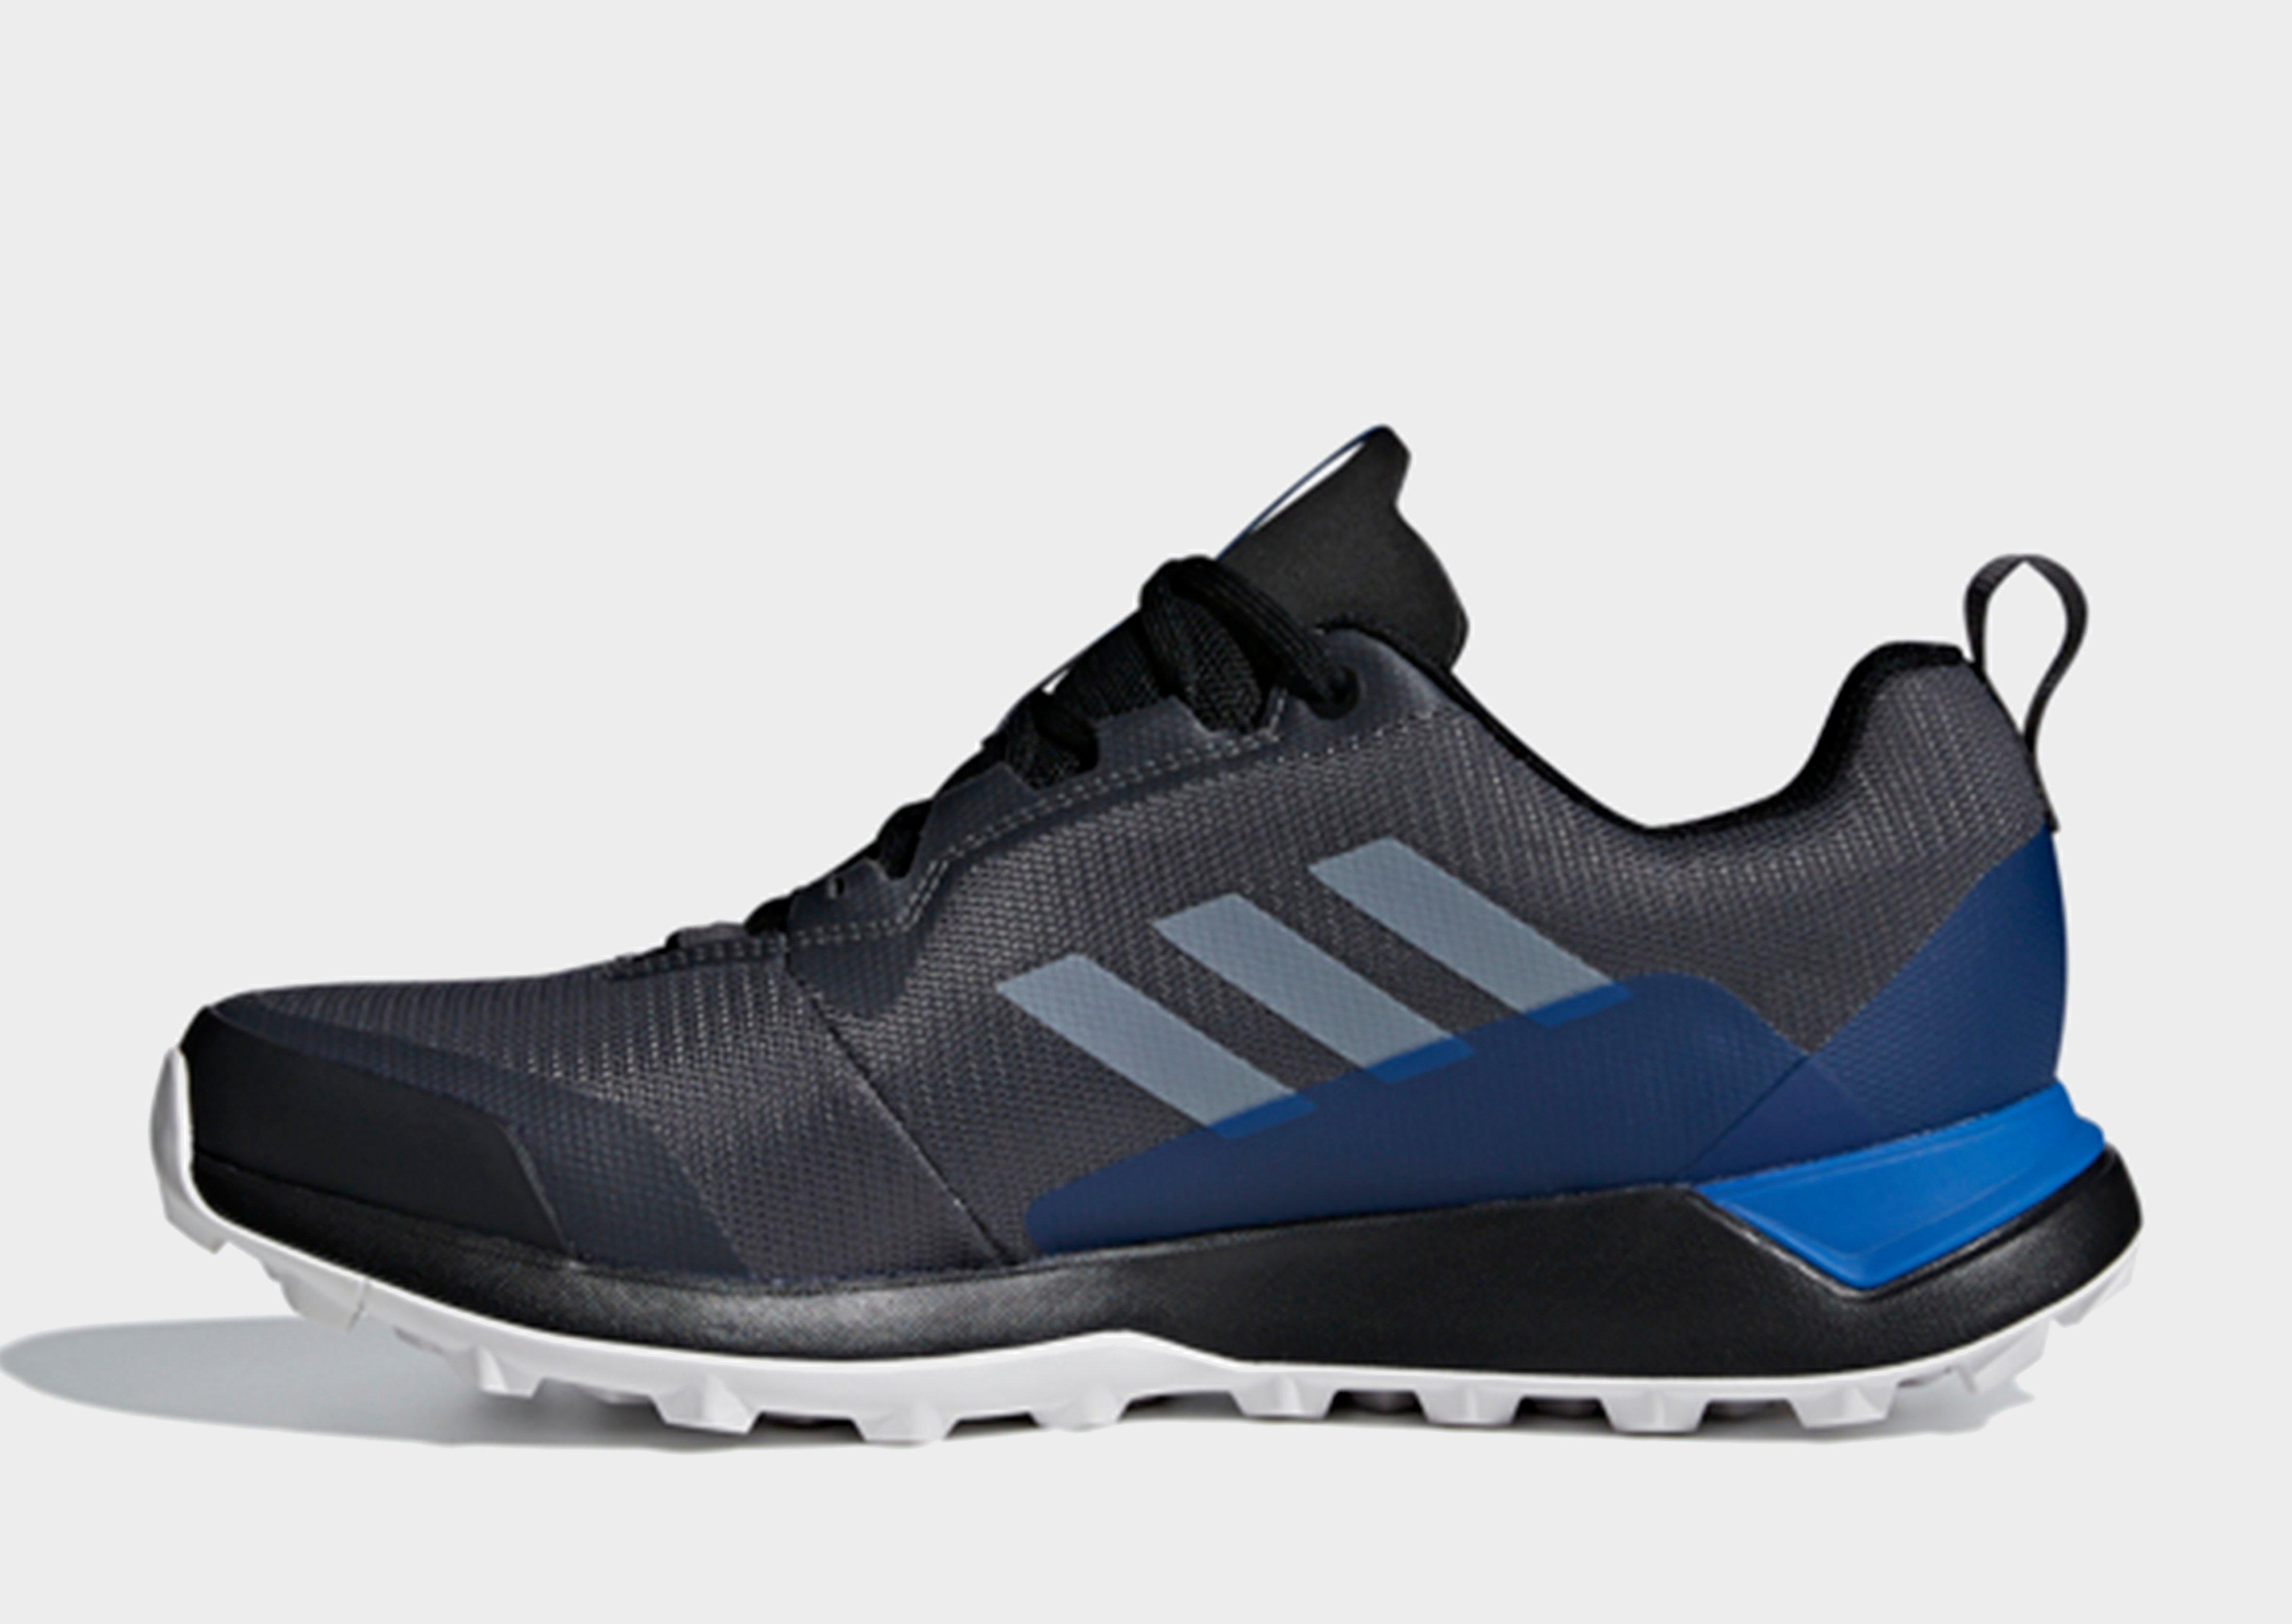 b9f2adca564034 Adidas Terrex Cmtk Gtx Shoes in Gray for Men - Lyst